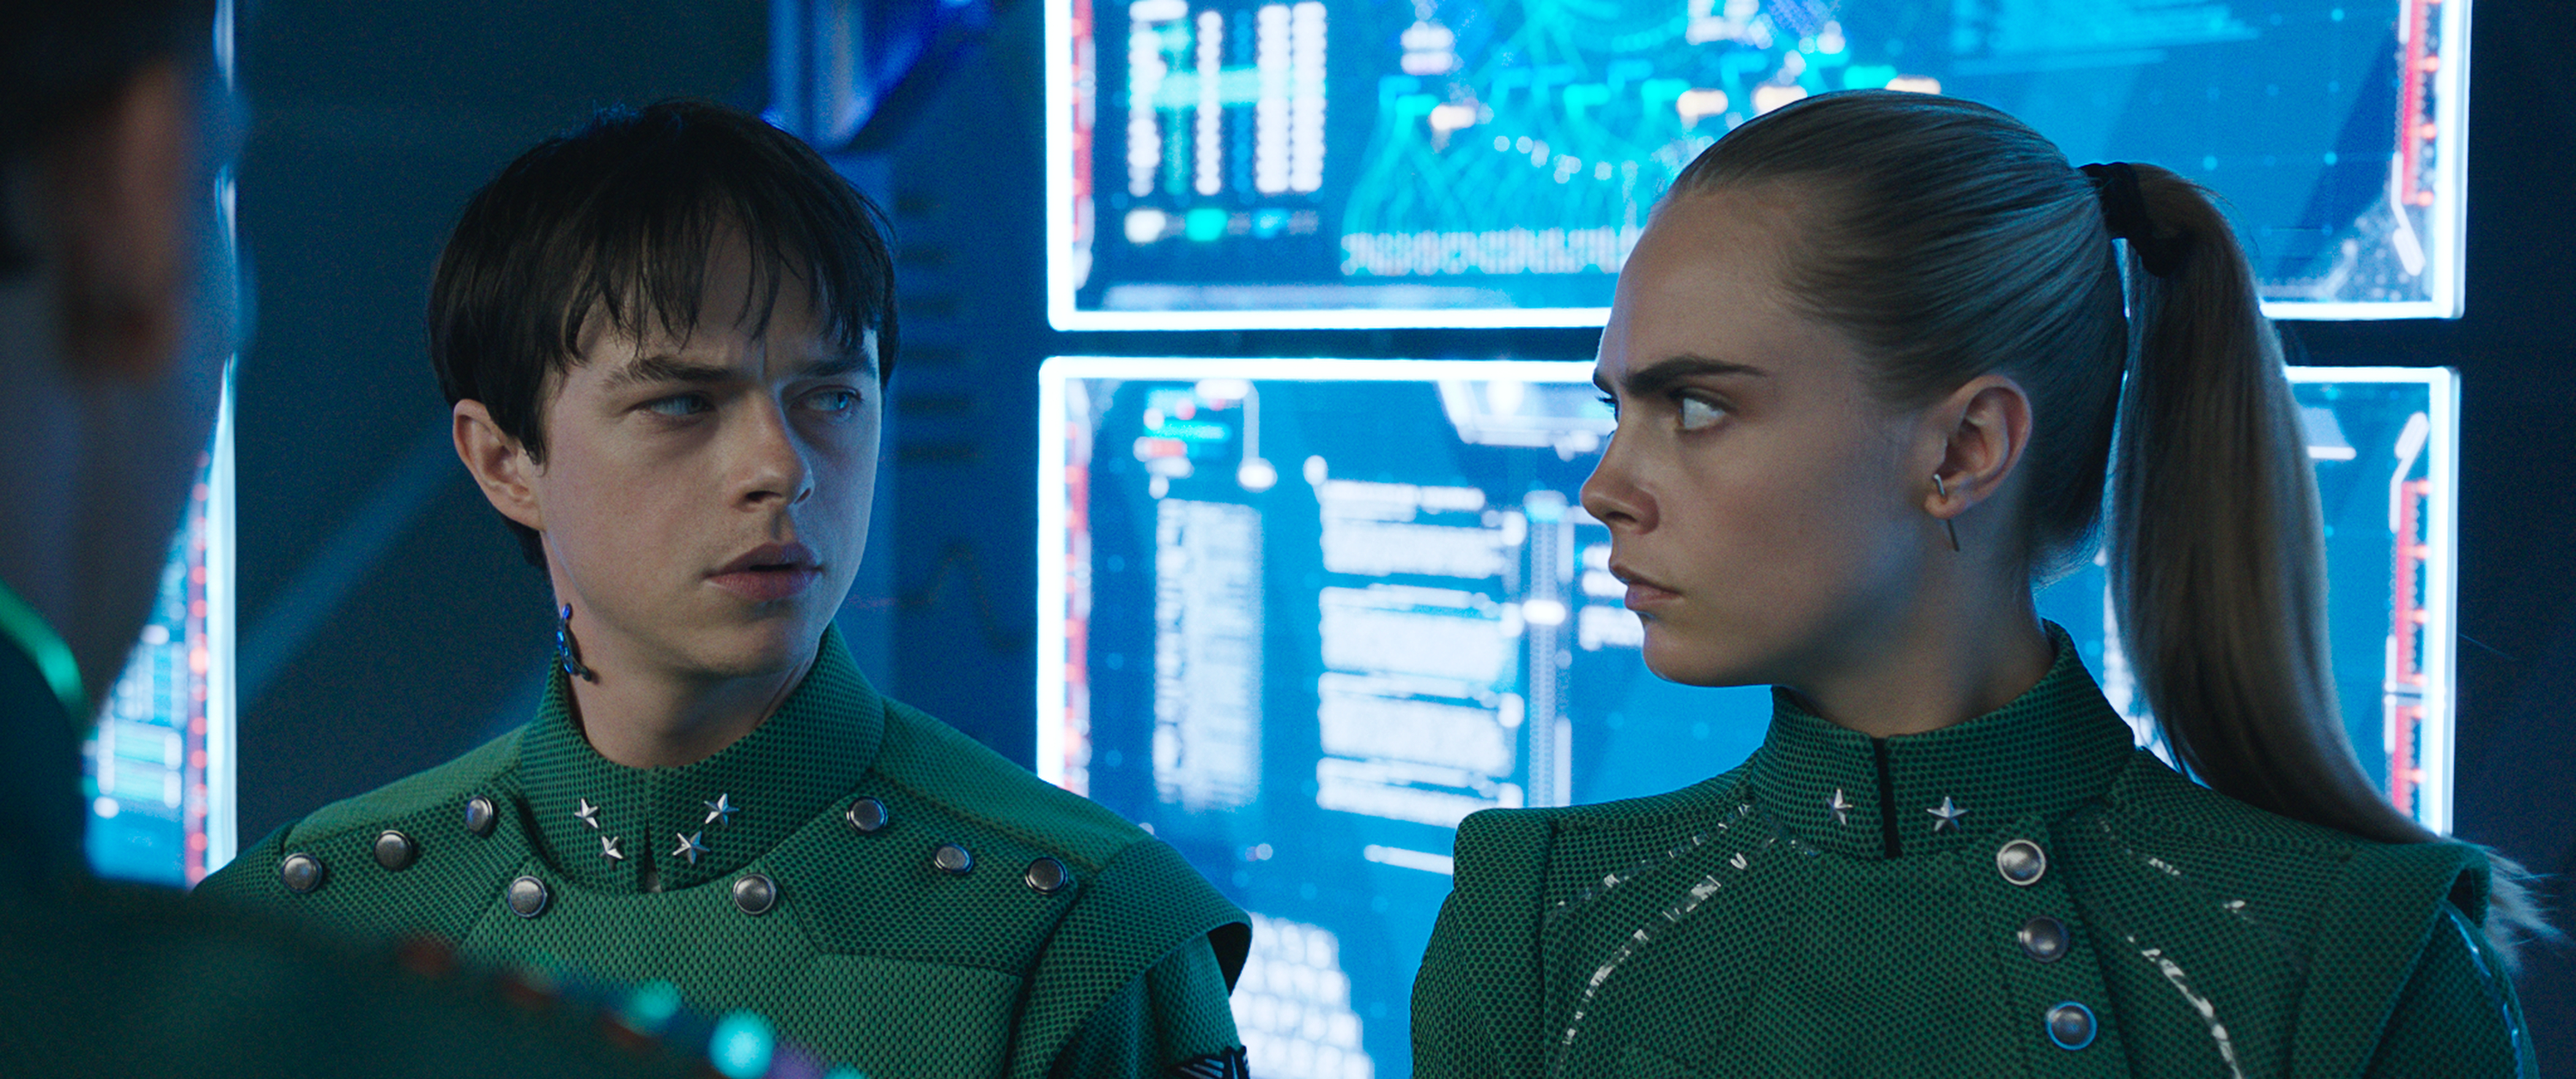 Dane DeHaan and Cara Delevingne star in VALERIAN AND THE CITY OF A THOUSAND PLANETS  Motion Picture Artwork © 2017 STX Financing, LLC. All Rights Reserved.